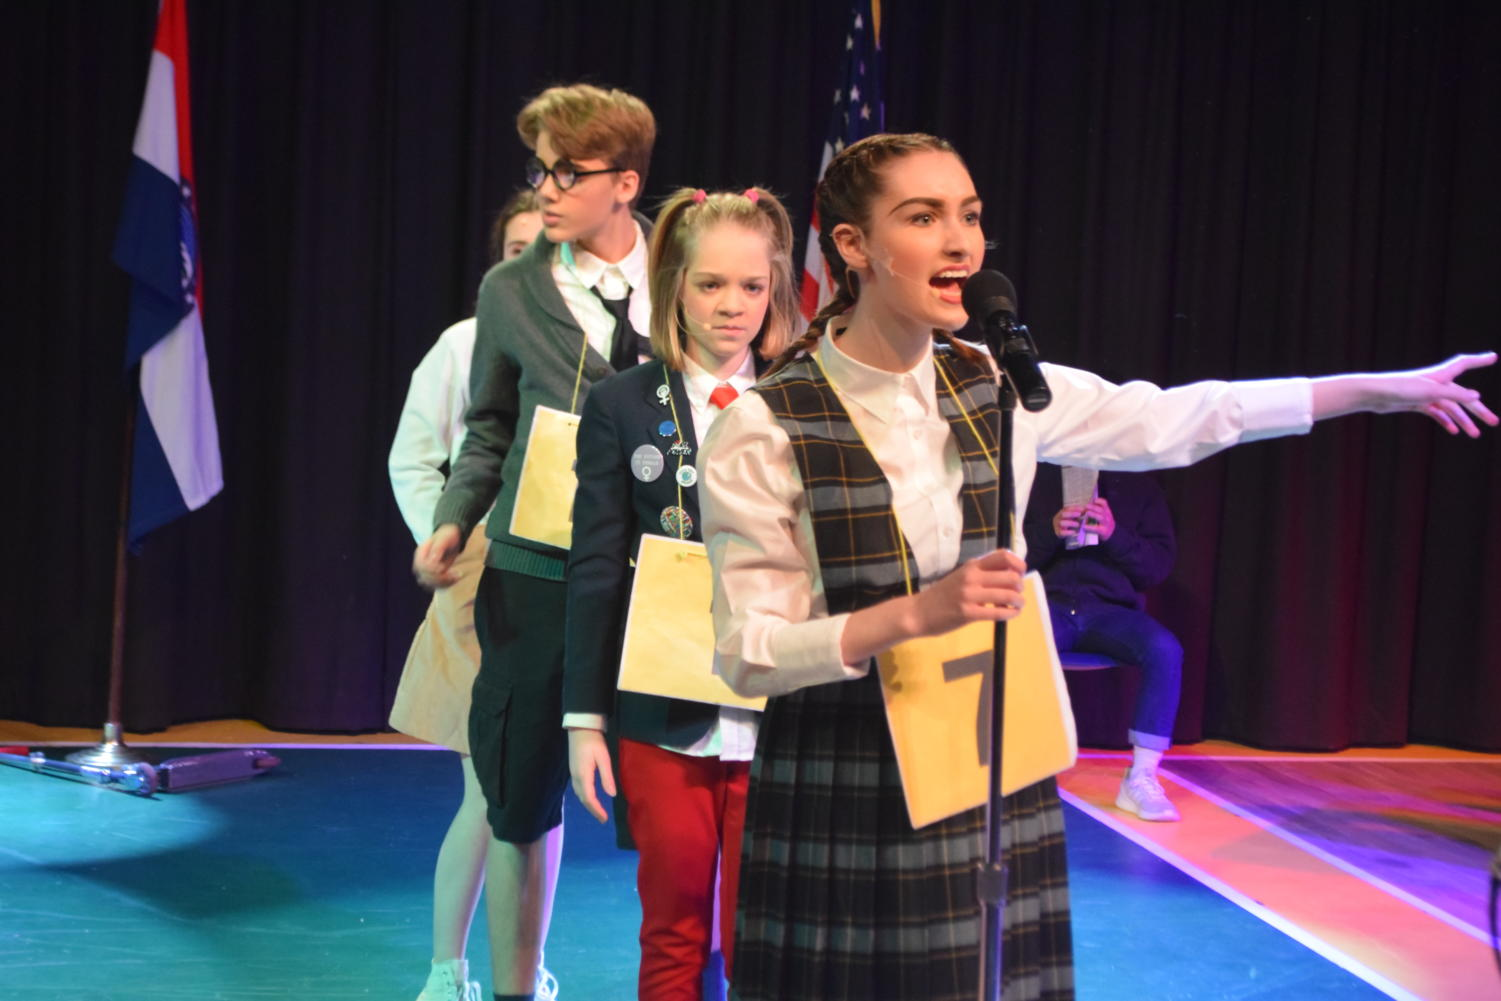 Senior Kennedy Brown performs as a perfectionist in the West High Dramatics Company's production of The 25th Annual Putnam County Spelling Bee musical. The musical was chosen for the spring show this year and was performed three separate times on the weekend of Feb. 9-11.